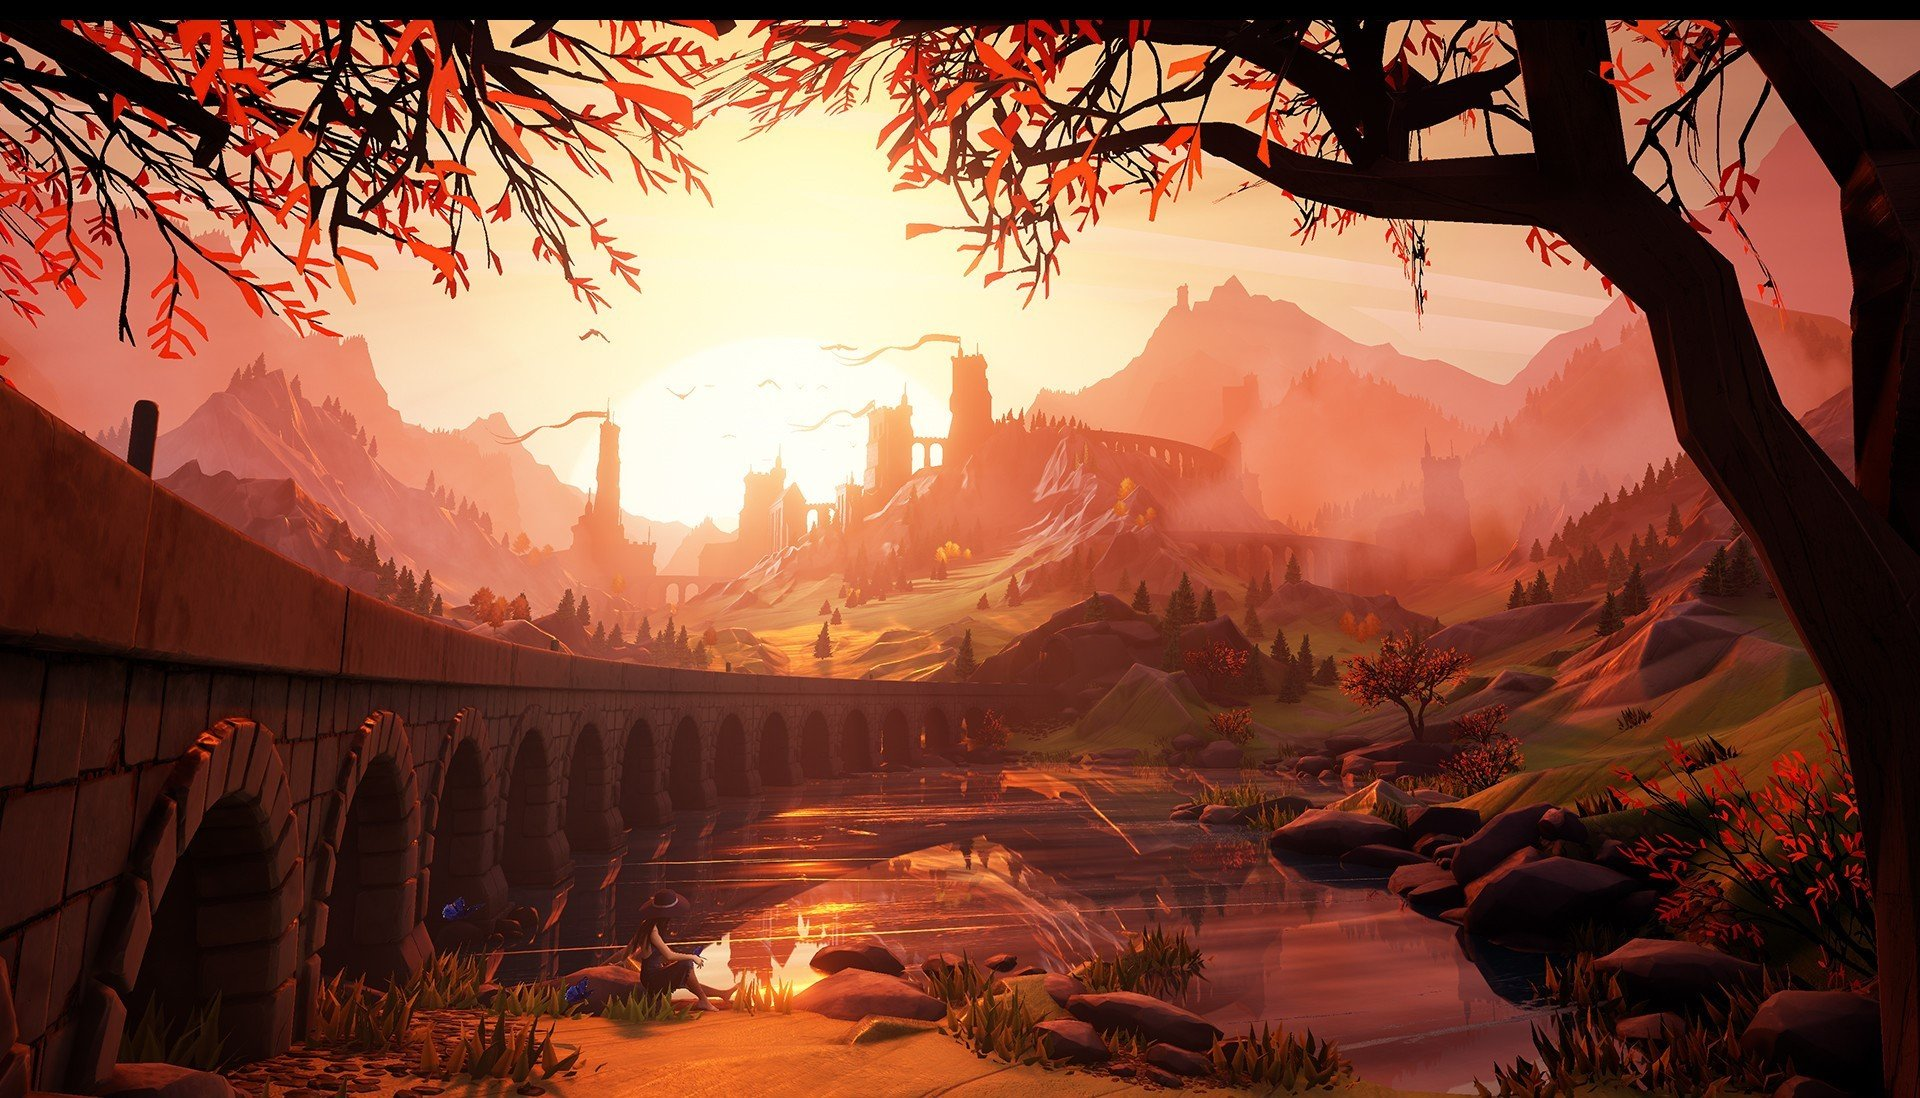 Hd Painting Wallpapers Download Illustration Sunset Castle Artwork Hd Wallpapers